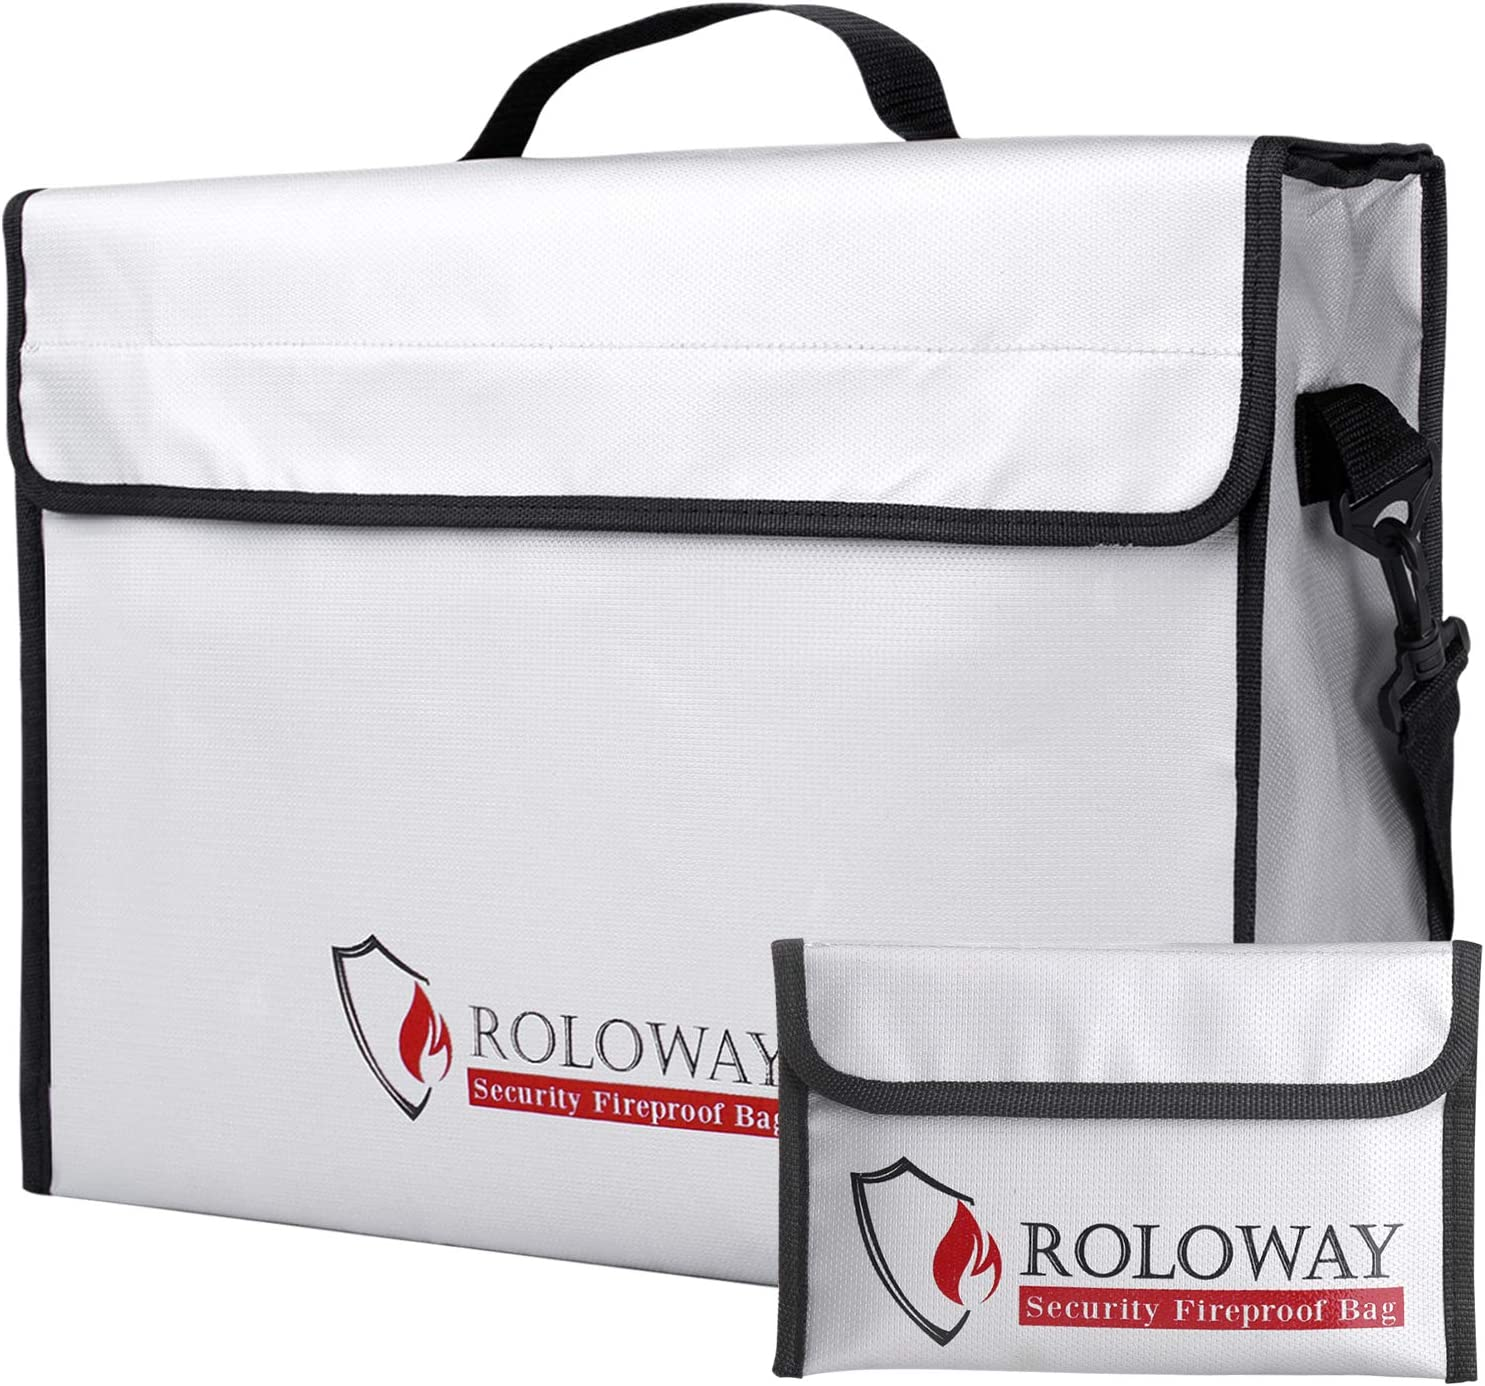 ROLOWAY Fireproof Document & Money Bags, Large Fireproof & Water Resistant Bag (16 x 12 x 5 inches), Fireproof Folder Safe Bag for Cash, Valuables & Passport, with Silicone Coating & Zipper Closure - -